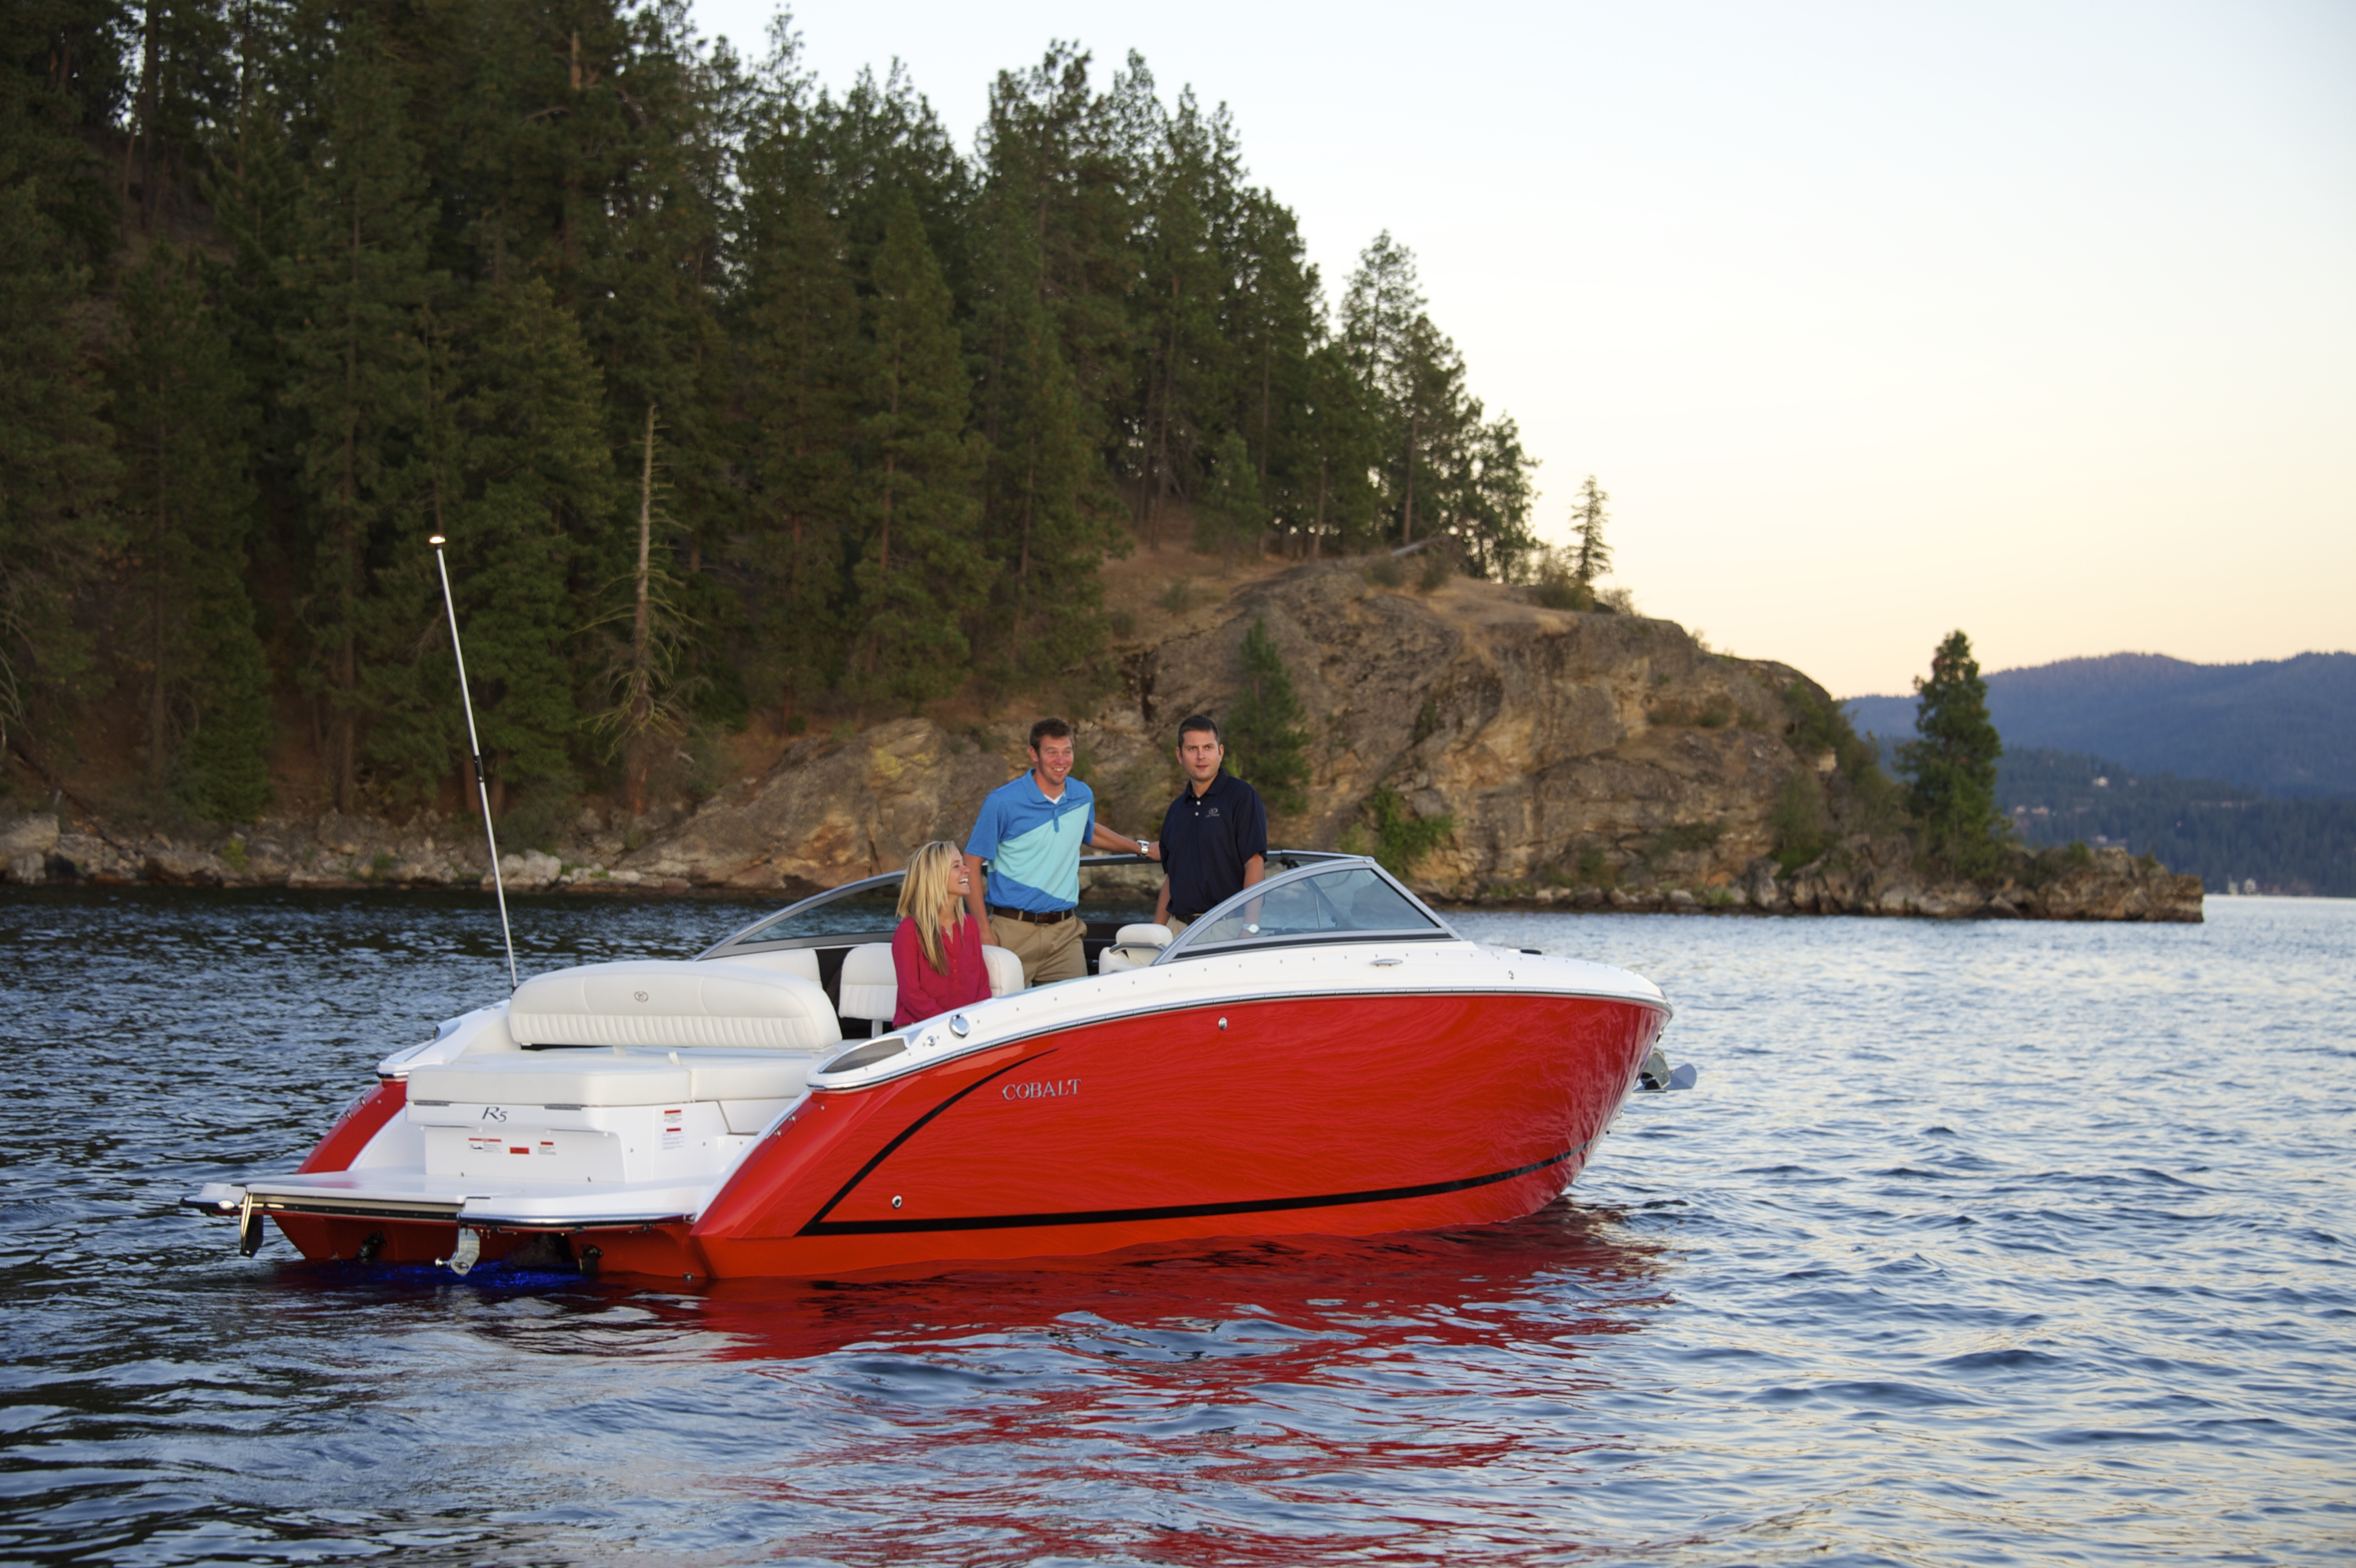 friends smiling and coasting on lake in cobalt runabout boat